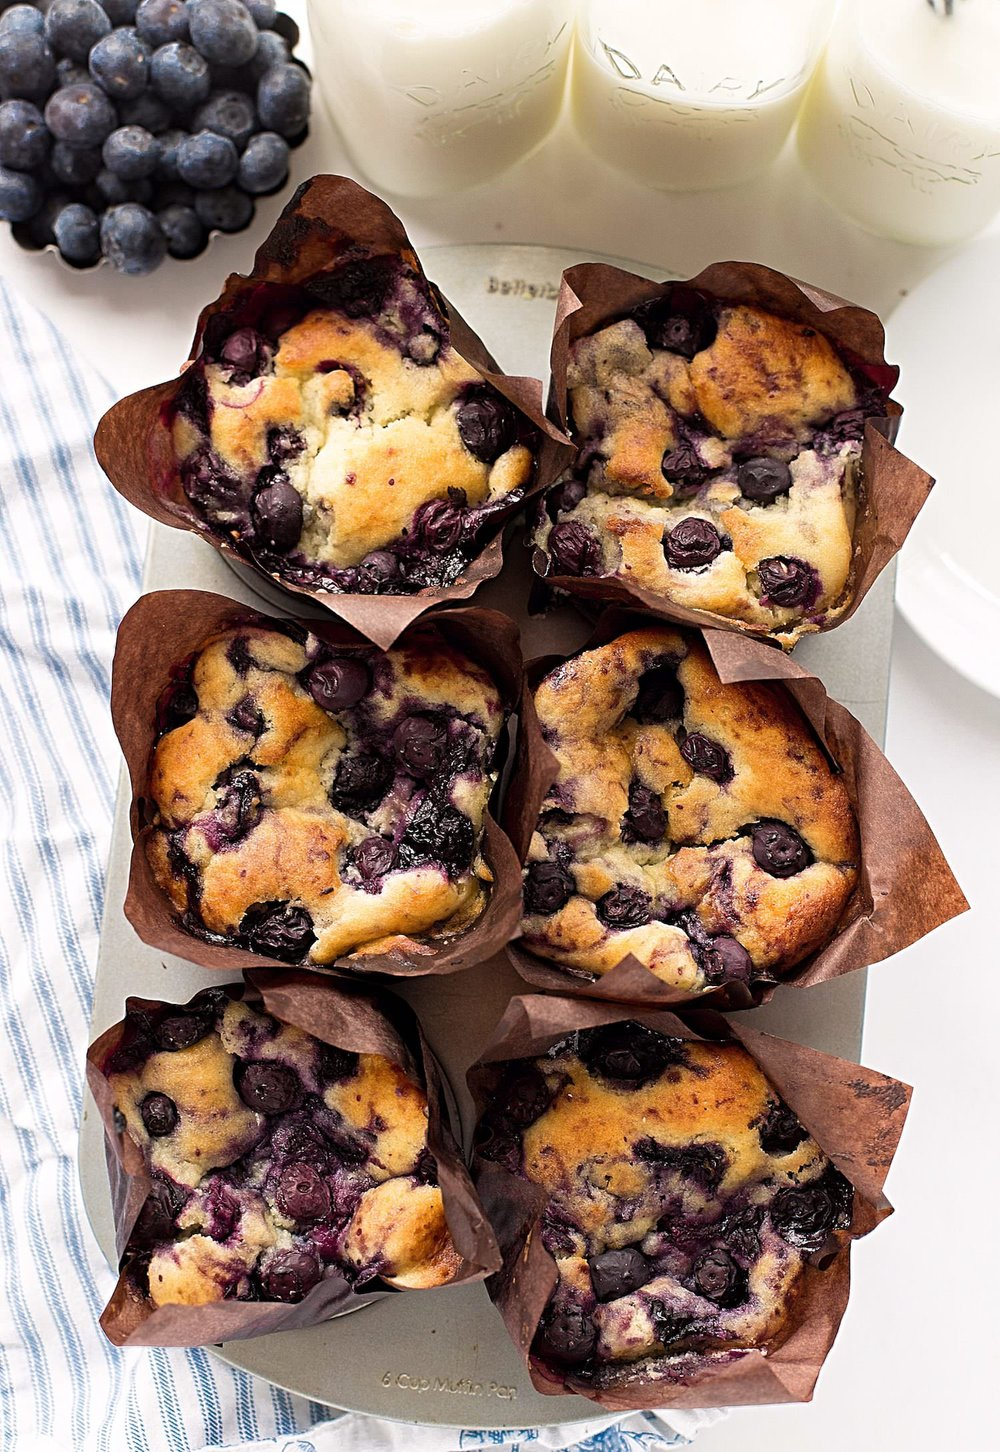 Fluffy Blueberry Jam Swirled Muffins: fluffy, tender blueberry muffins with crispy tops and just the right amount of sweetness. Swirled with a homemade, 5-minute blueberry jam! | TrufflesandTrends.com